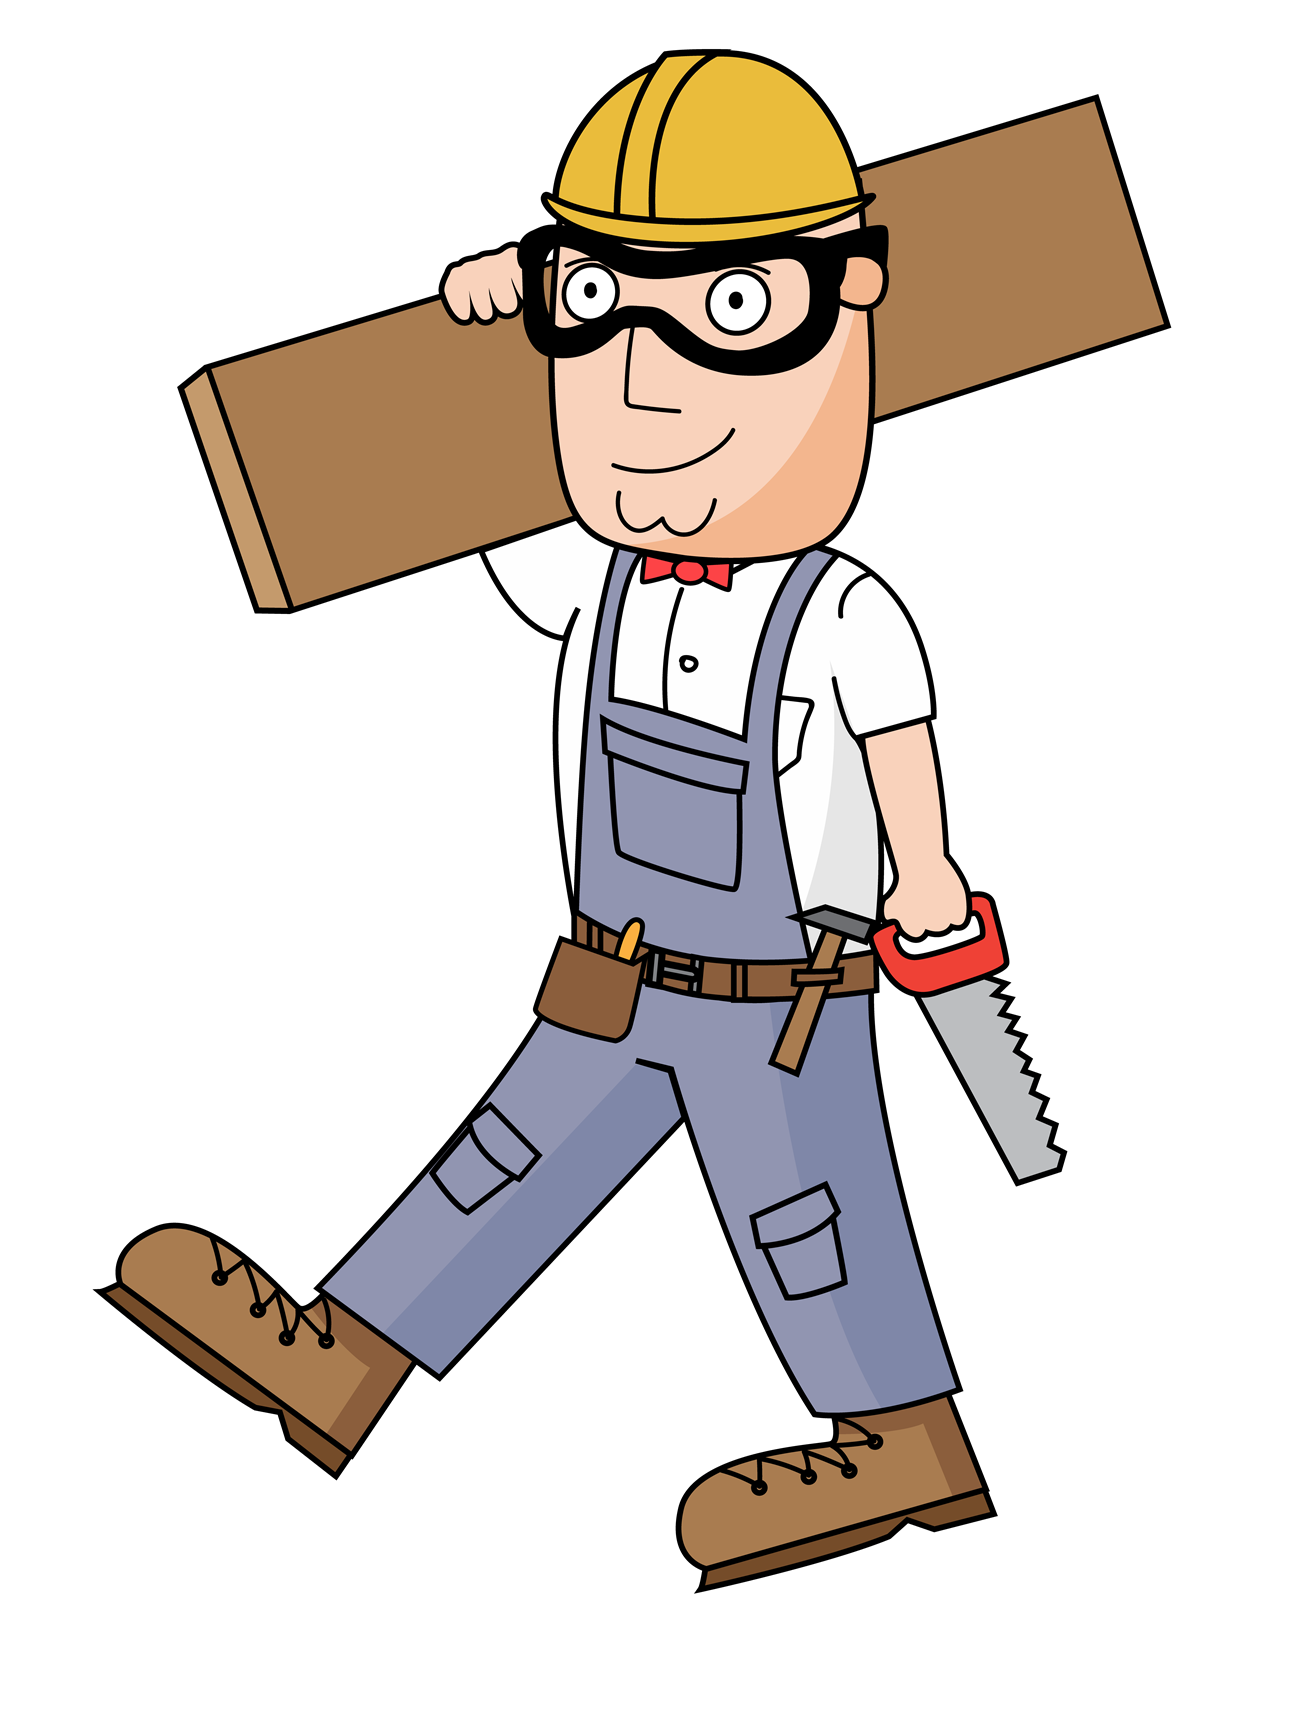 billy dressed up as a carpenter